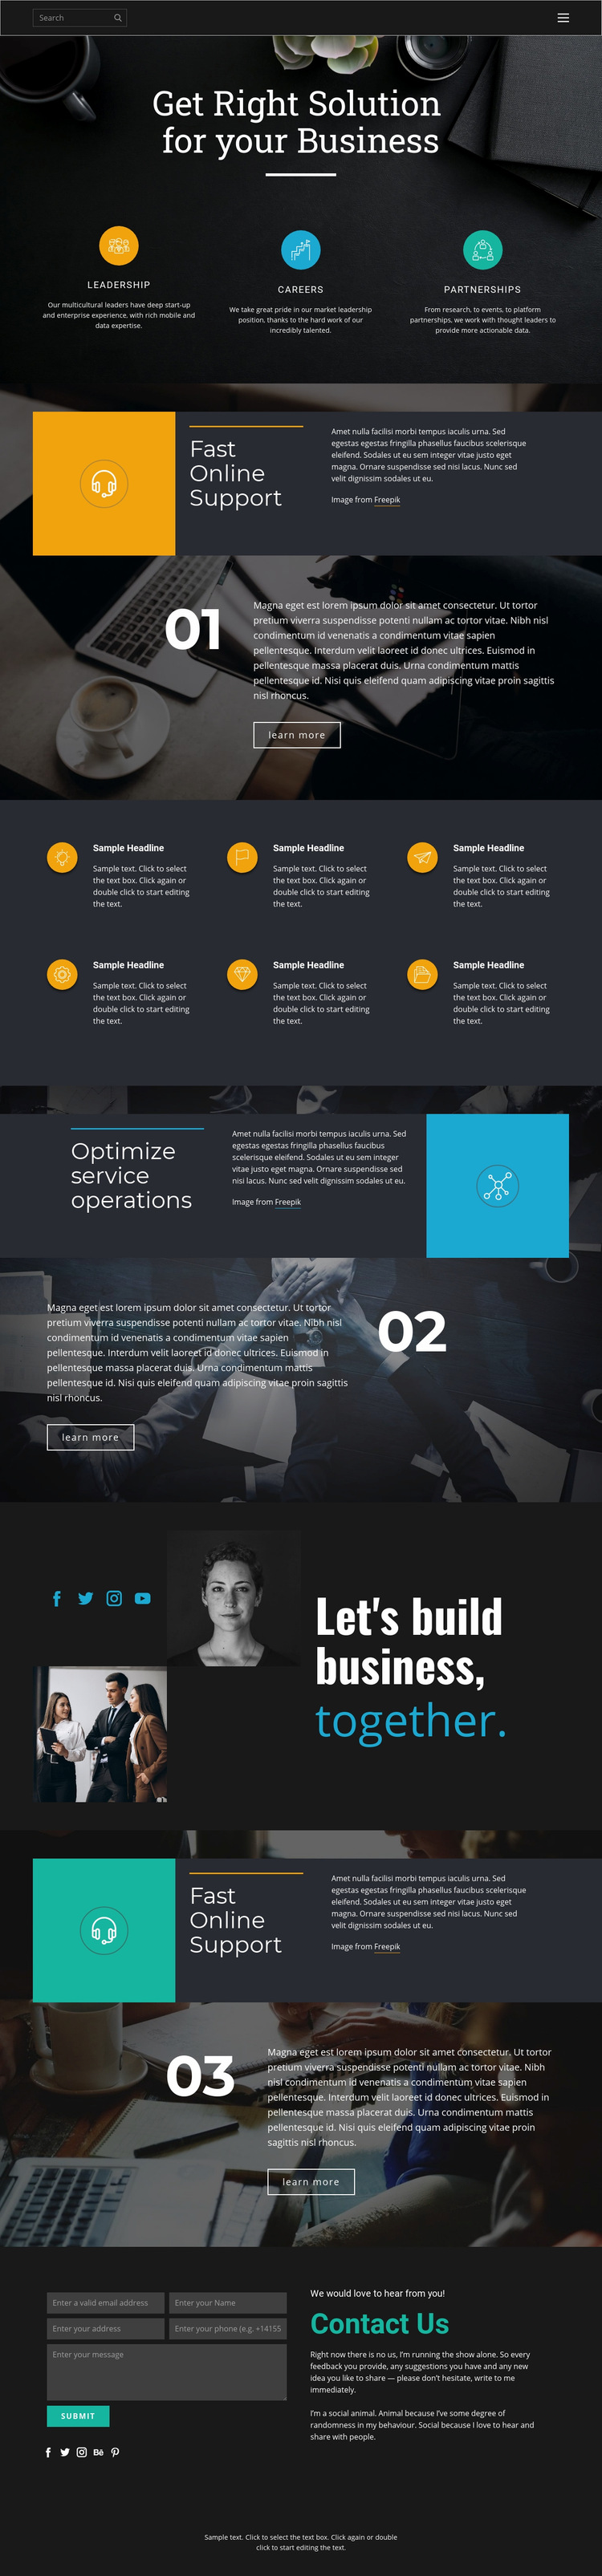 Right solutions for business Web Page Design